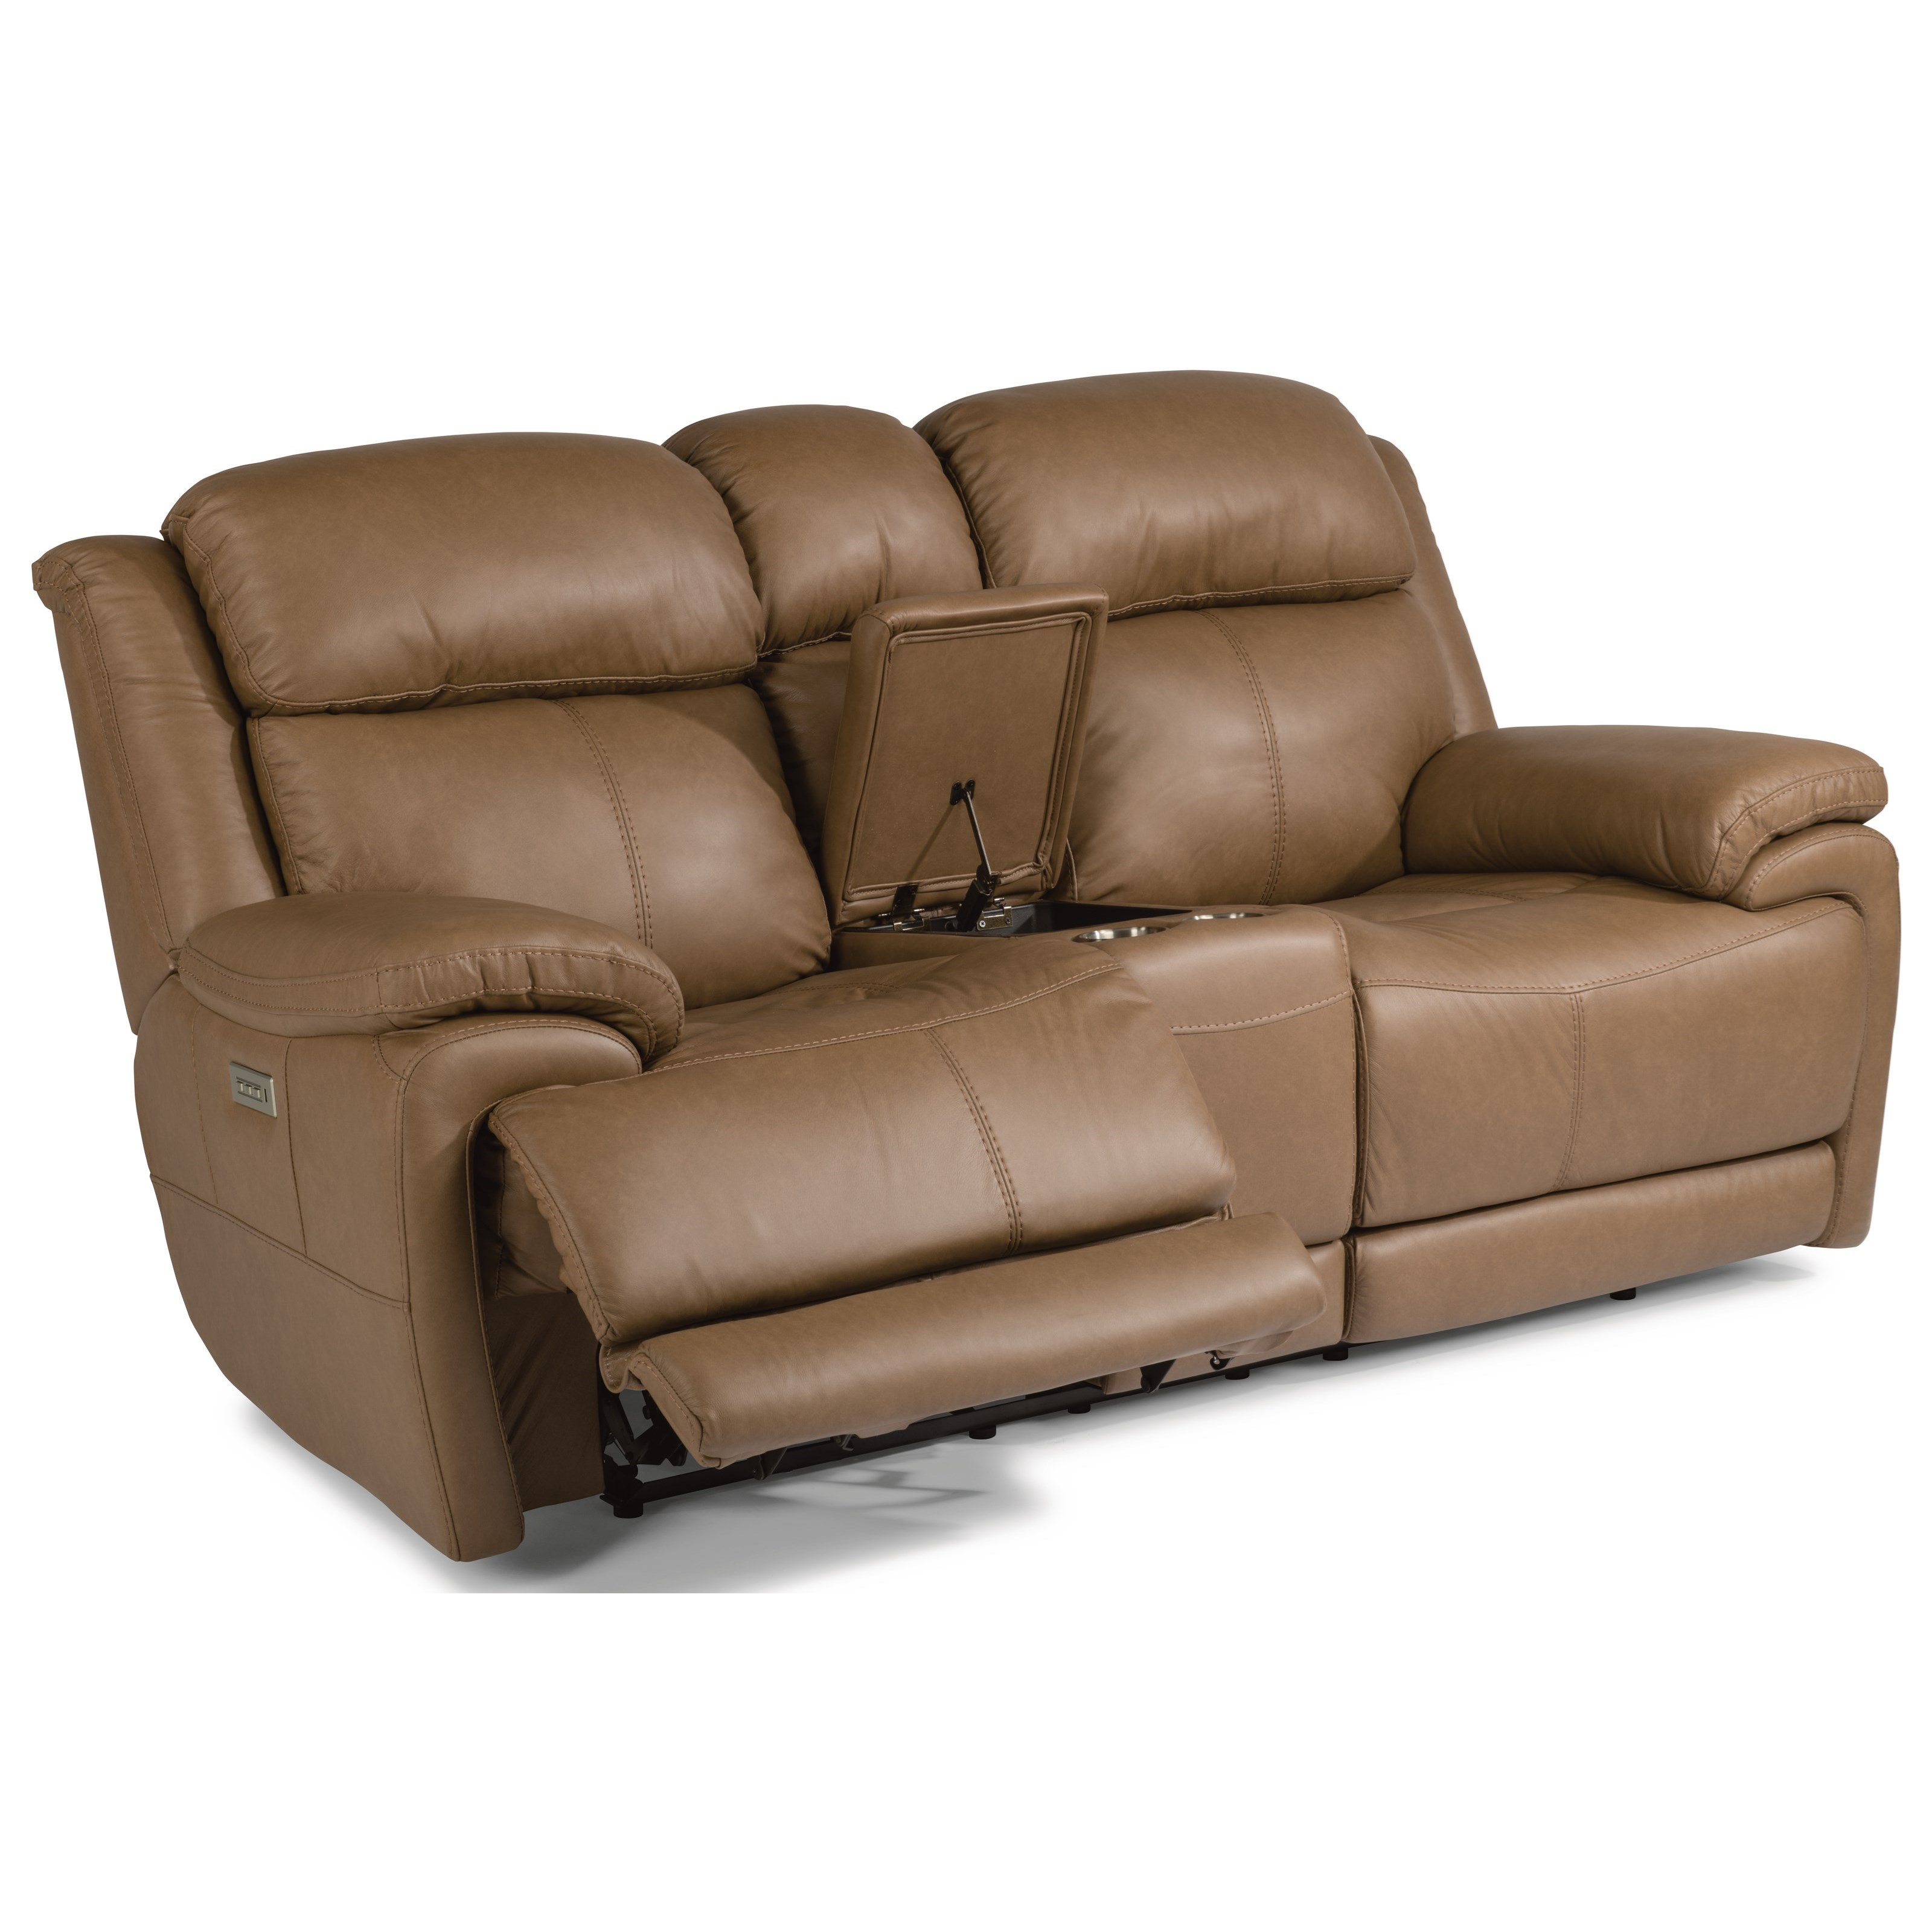 Latitudes - Elijah Power Reclining Loveseat with Console by Flexsteel at Zak's Home